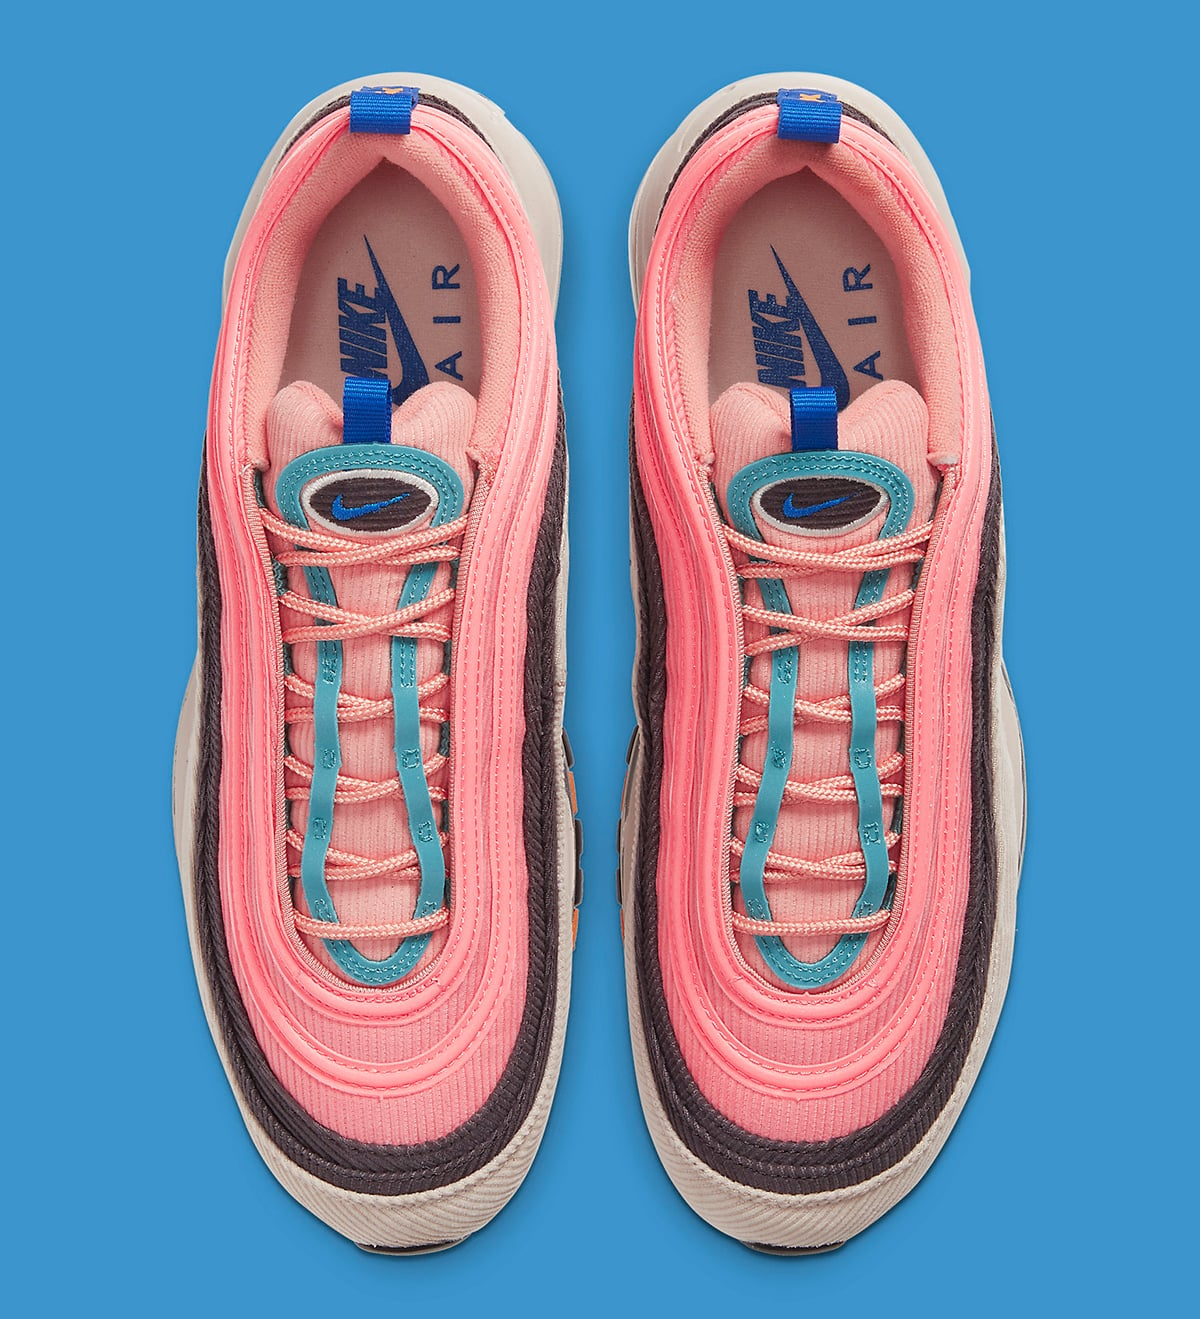 Nike Air Max 97 Corduroy Pack Channels Sean Wotherspoon S Iconic